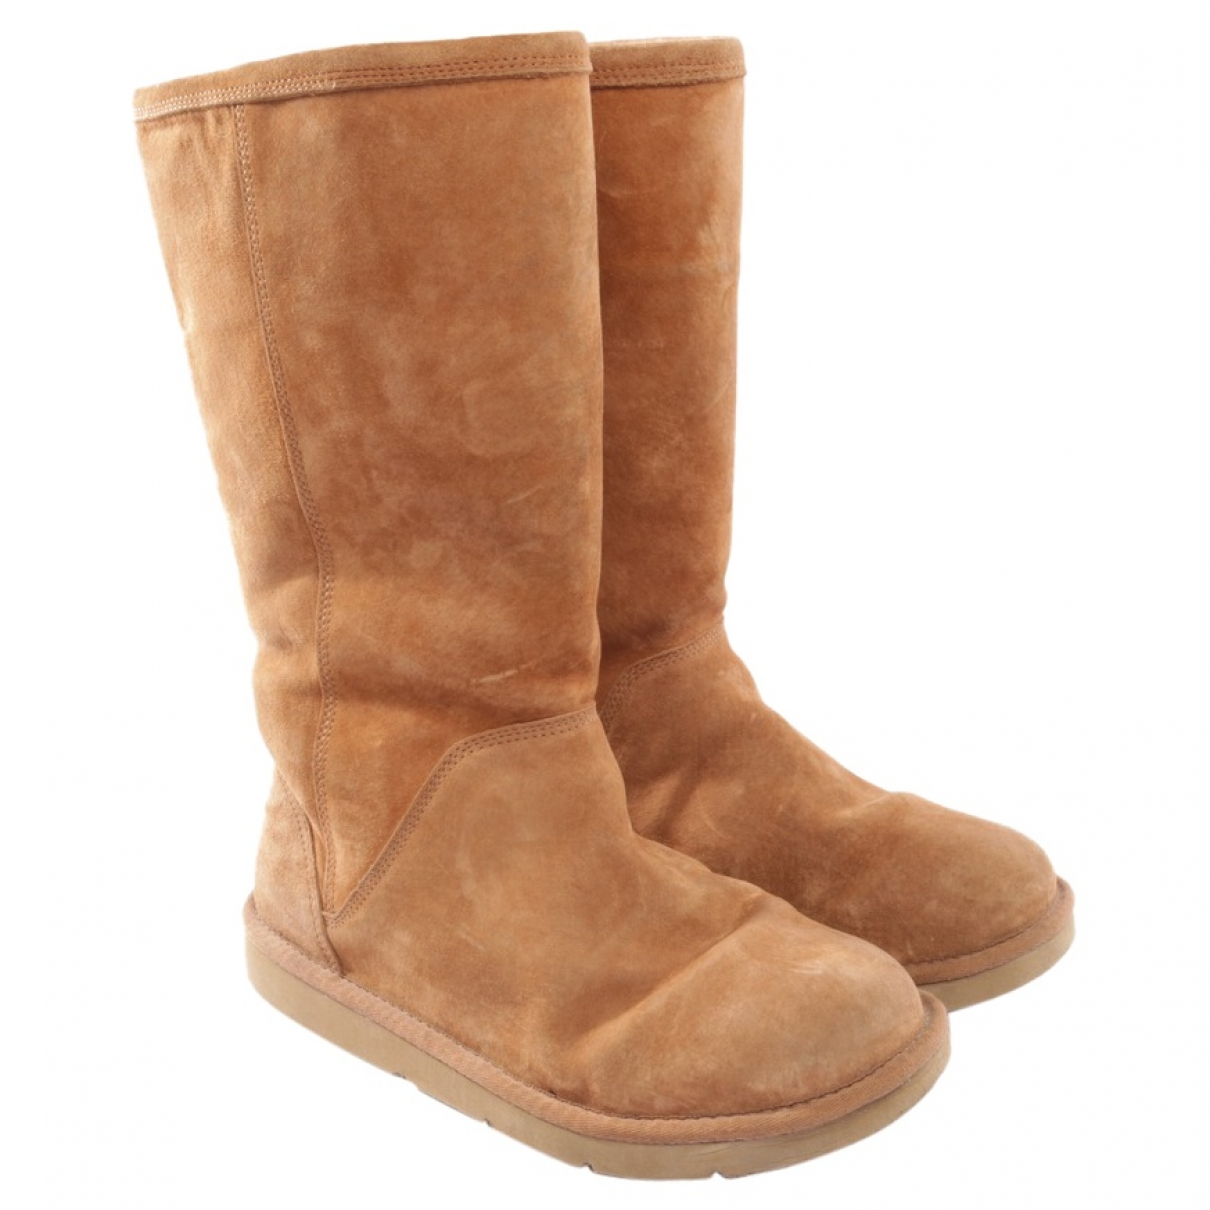 Ugg \N Beige Leather Boots for Women 41 EU